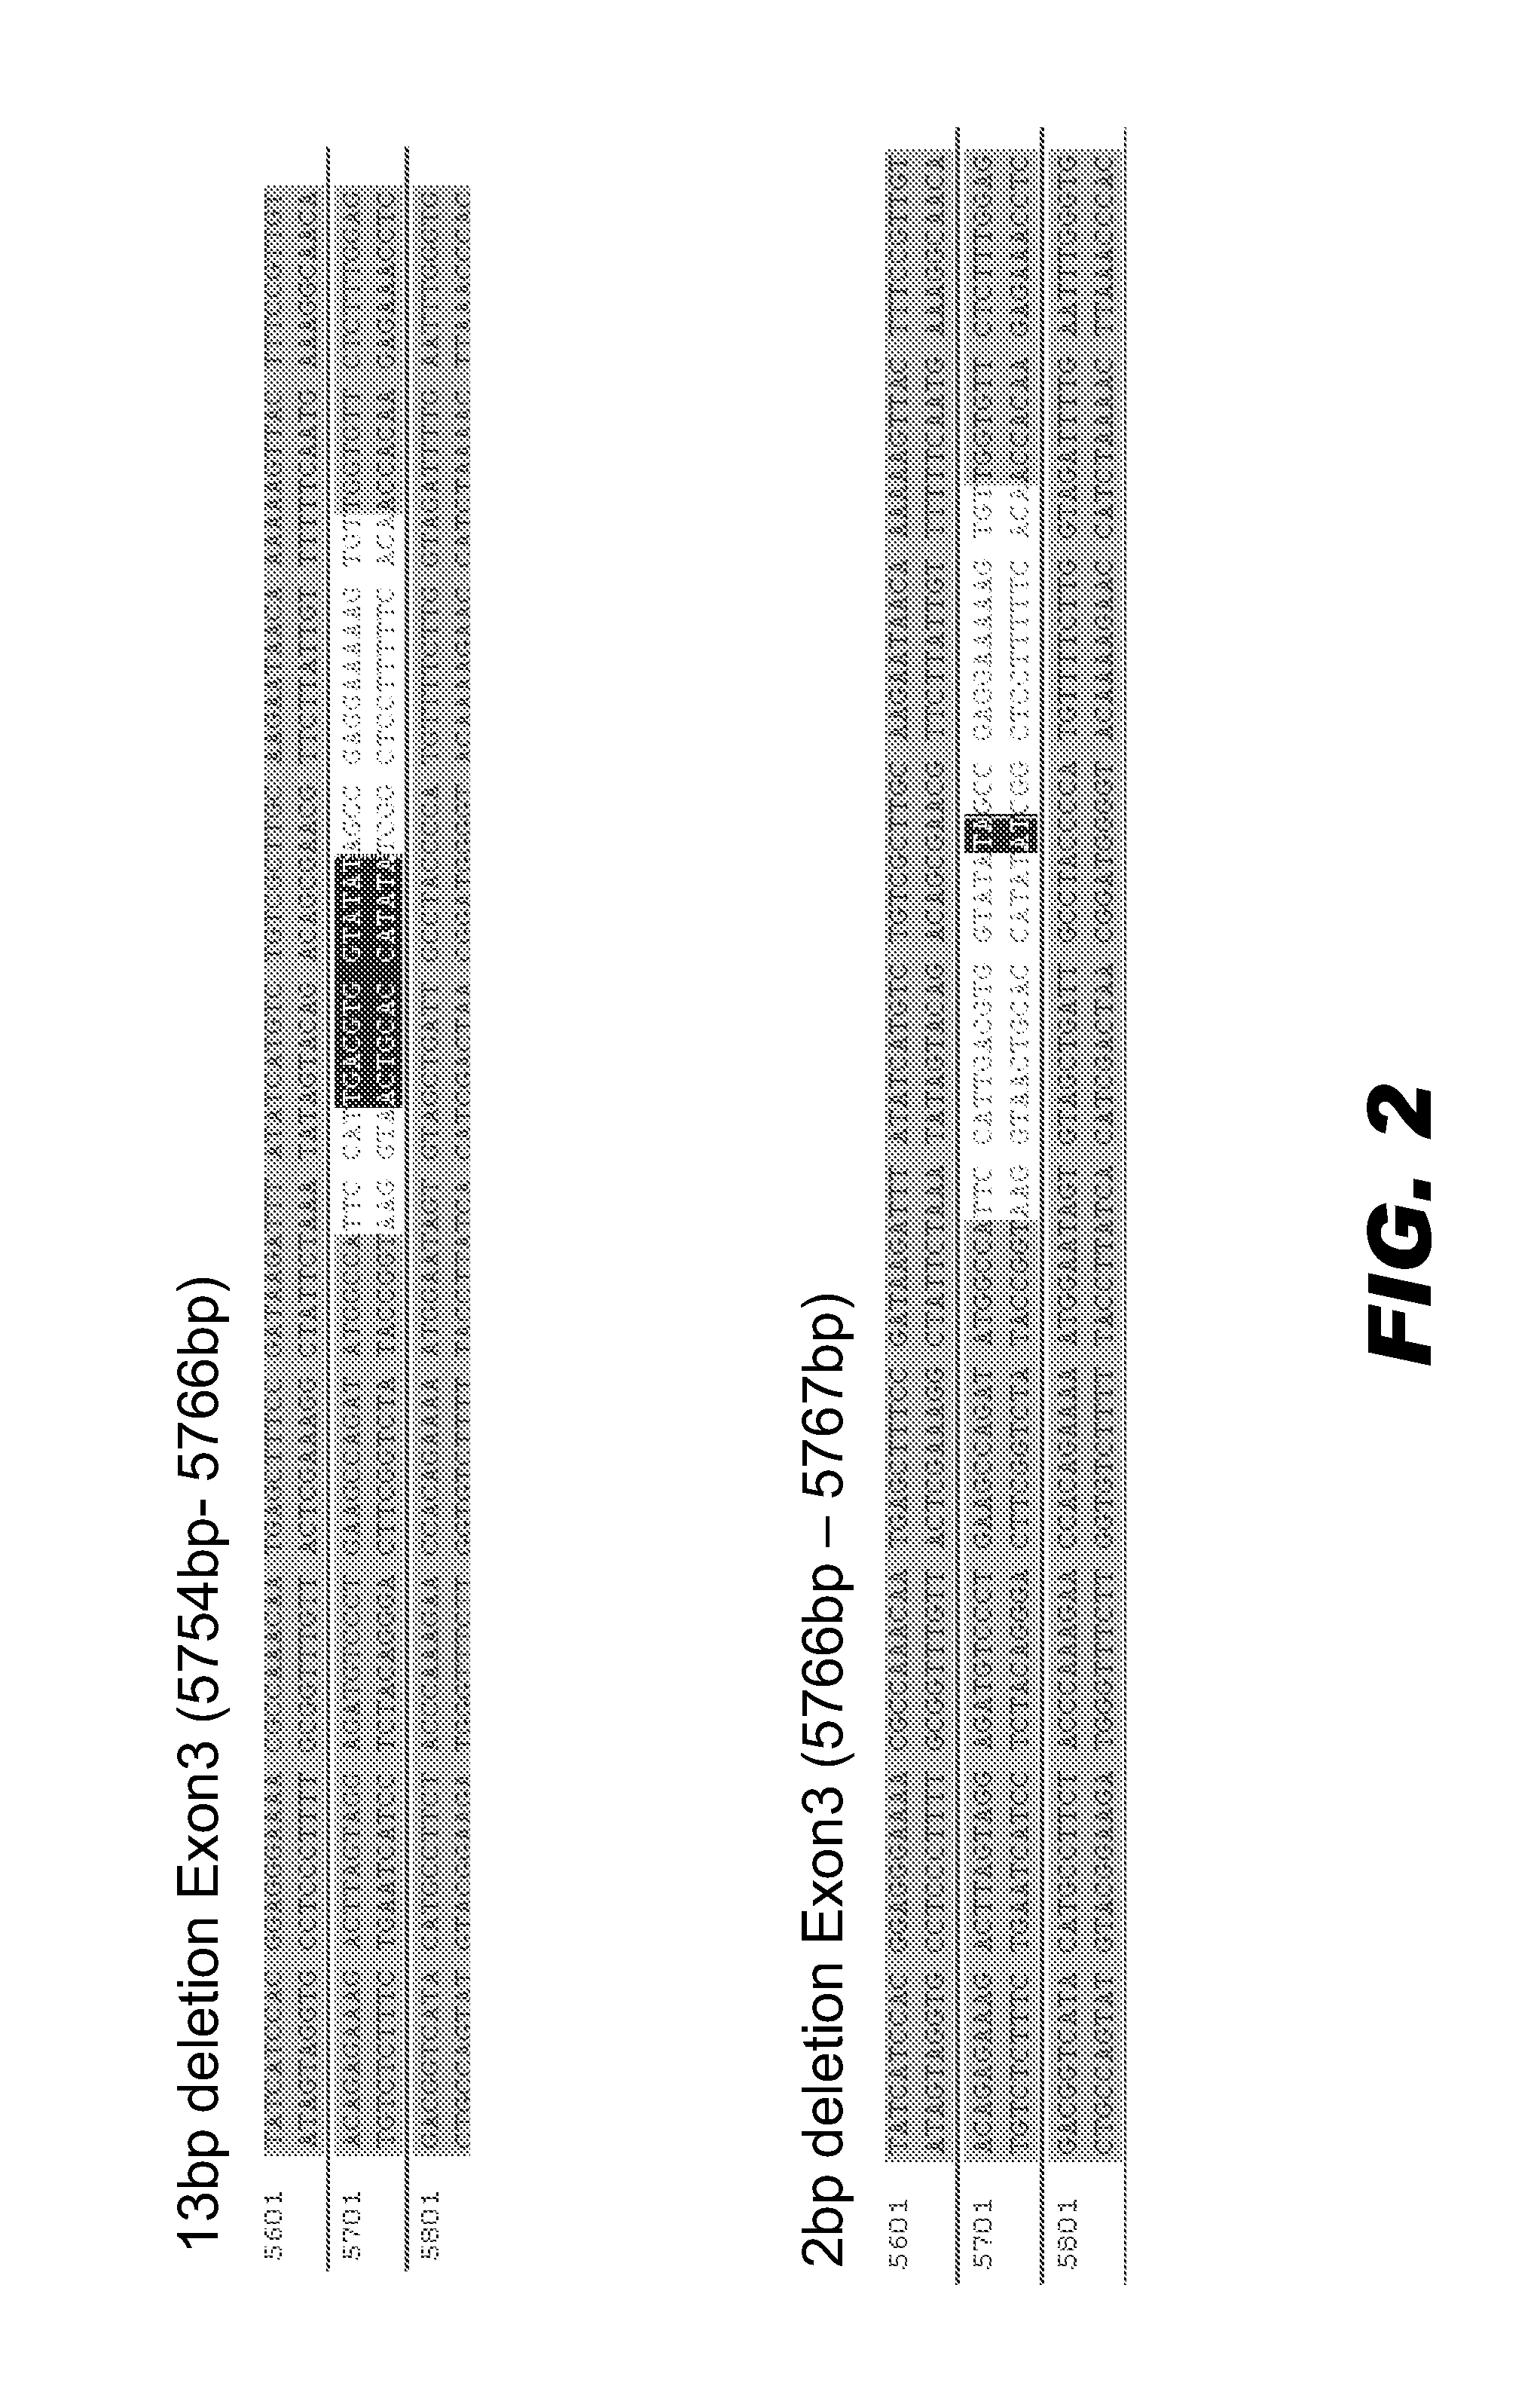 Patent US Genome editing of immunodeficiency genes in